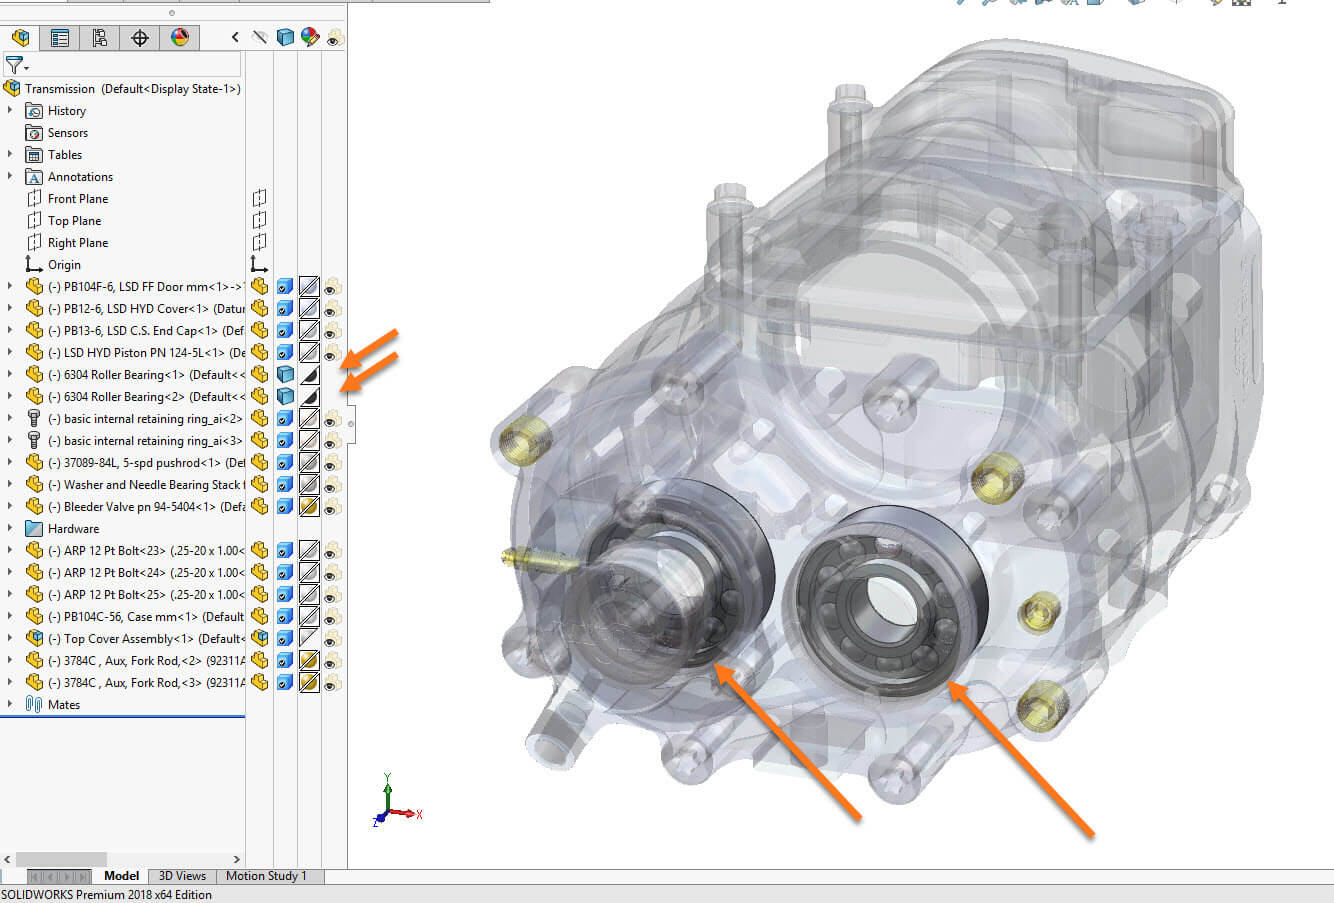 New Top Level Transparency for ALL components in SOLIDWORKS 2018